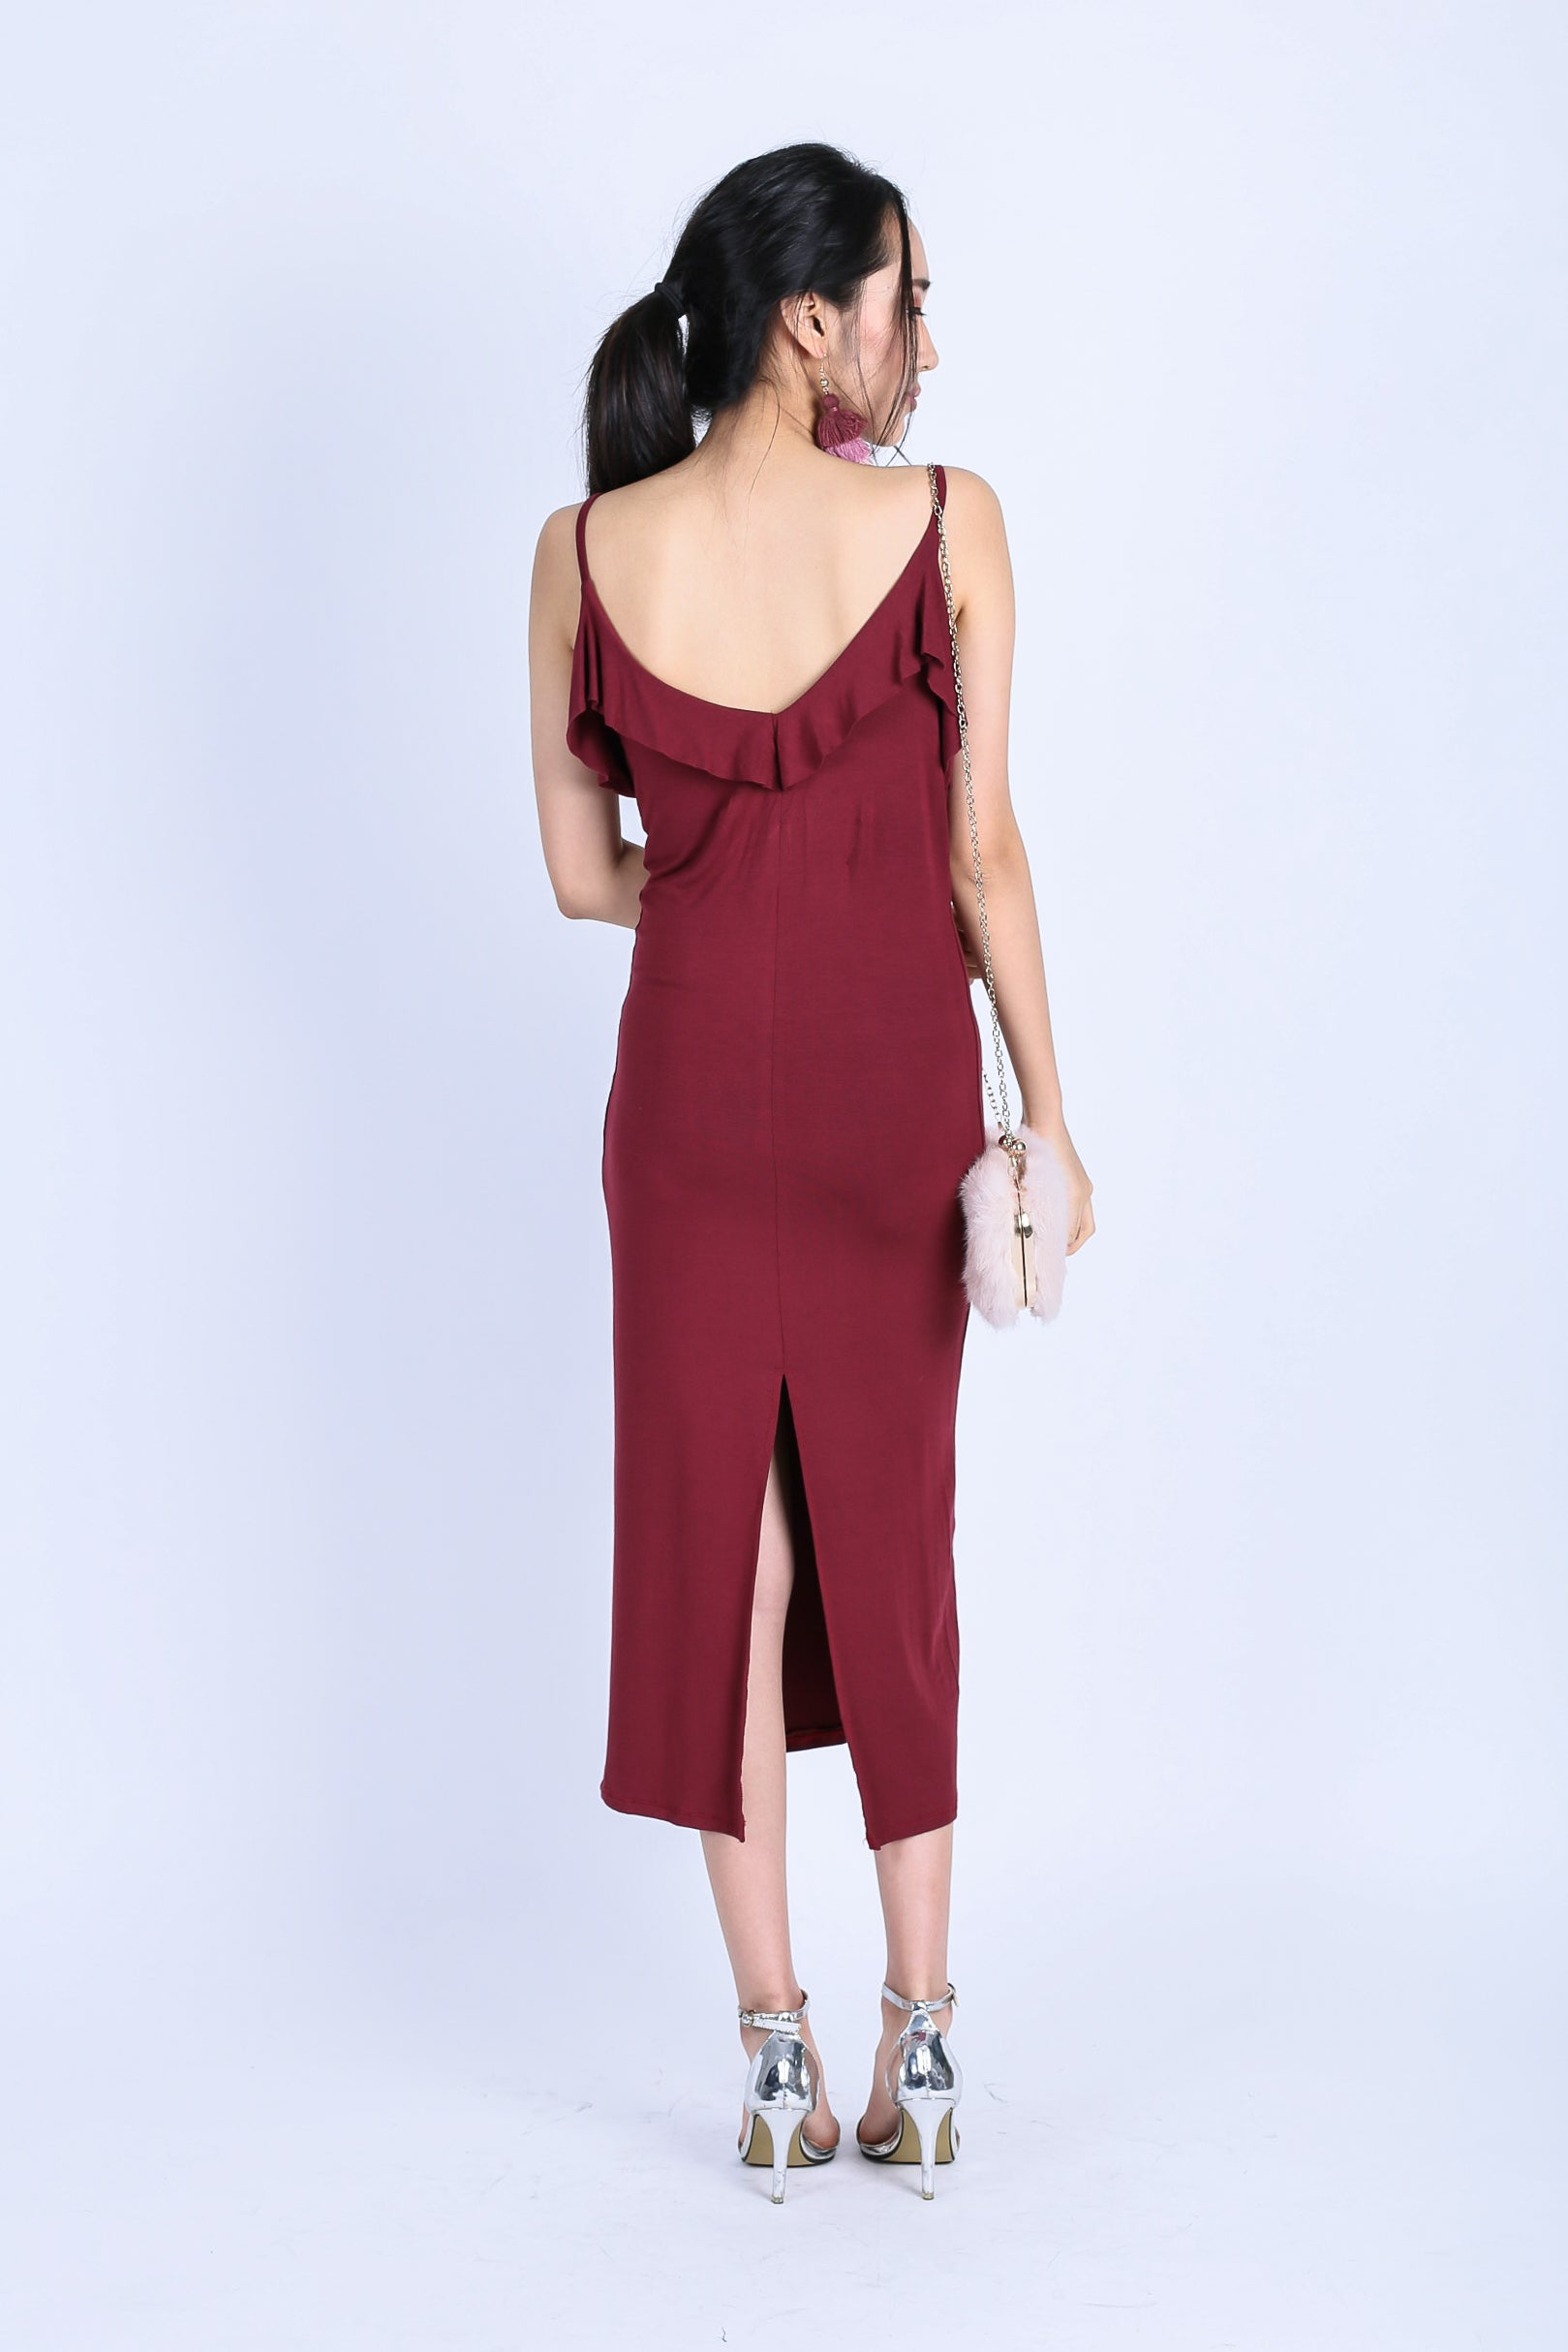 *BACKORDER* IOWA DRAPE DRESS IN WINE